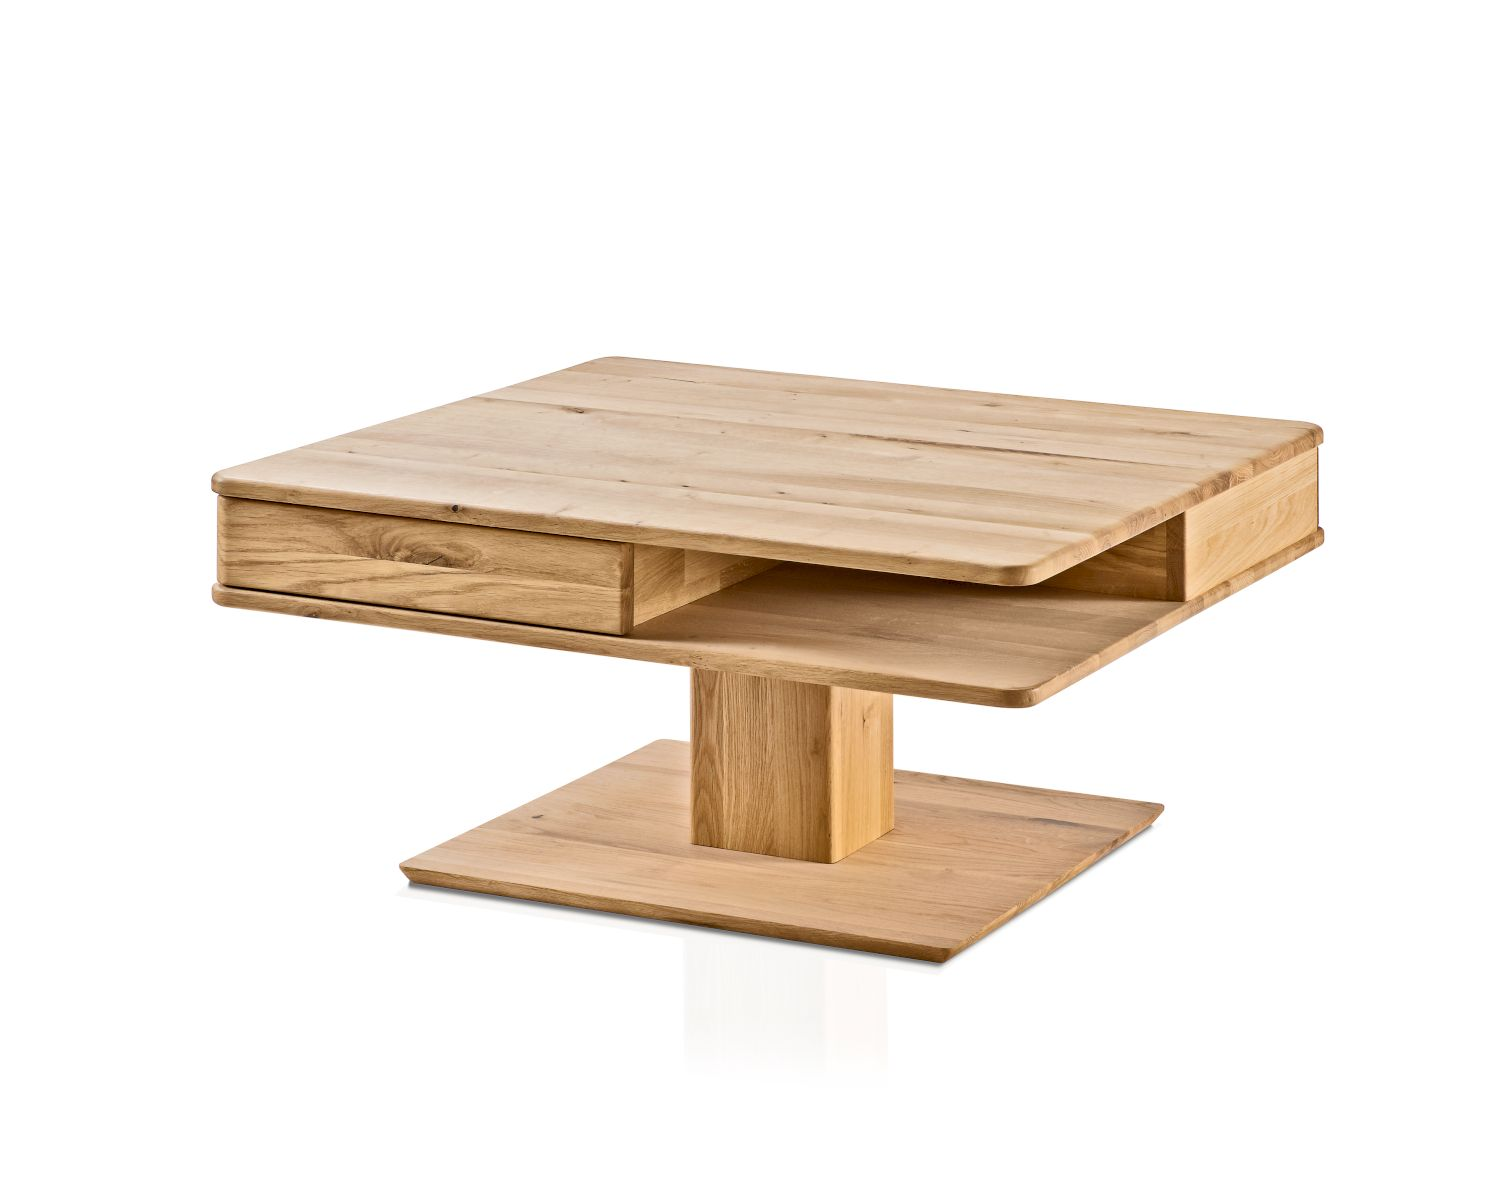 Woodlive massivholz couchtisch quadro bei for Sessel quadro